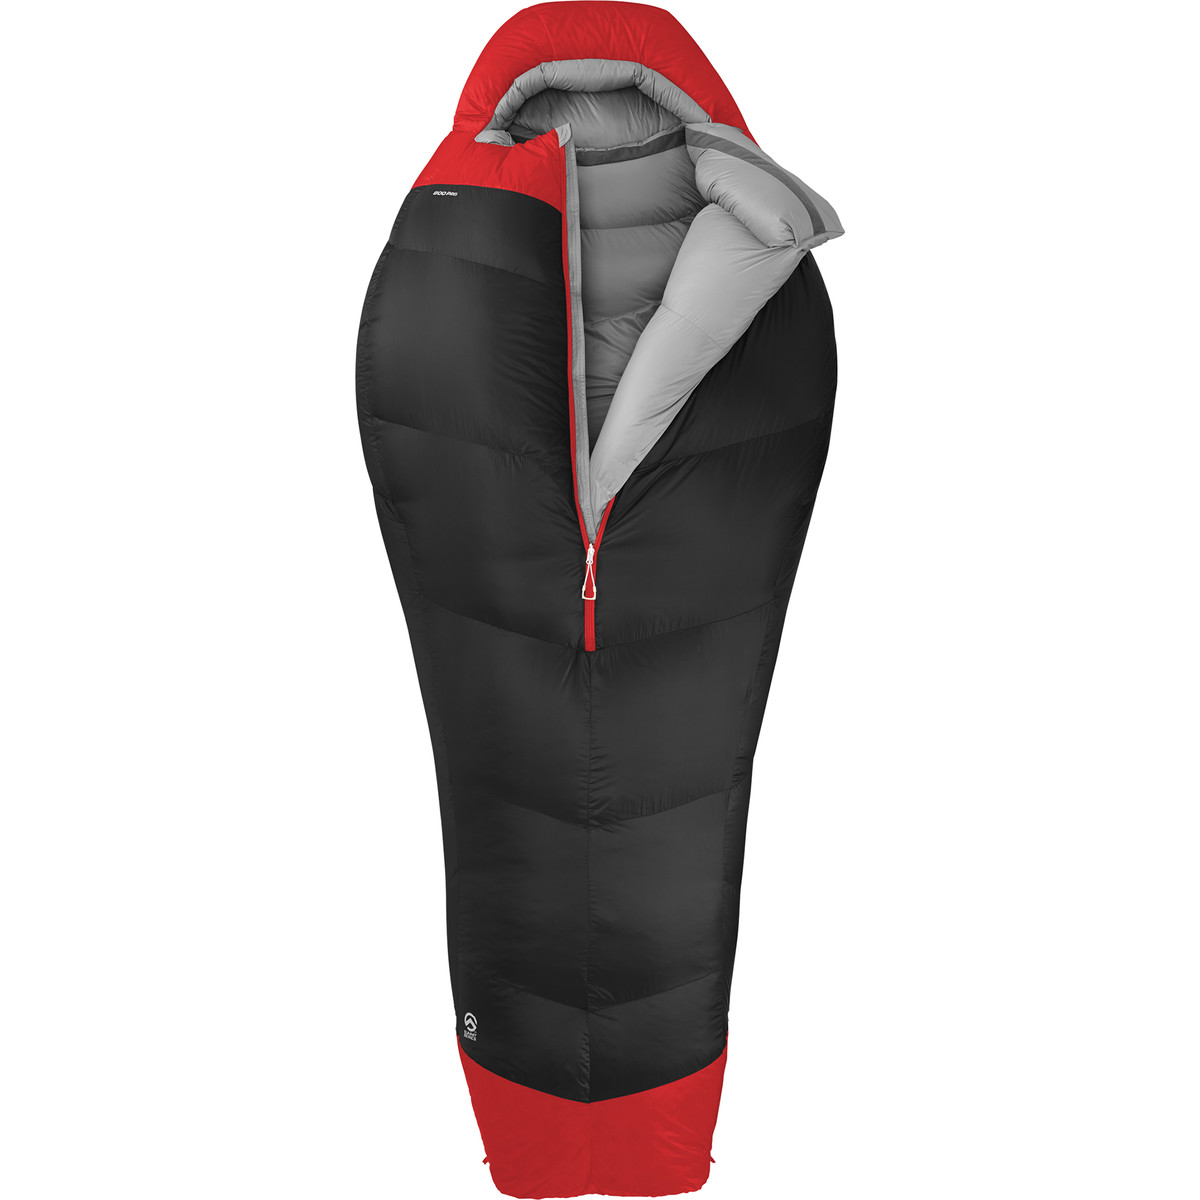 photo of a The North Face hiking/camping product